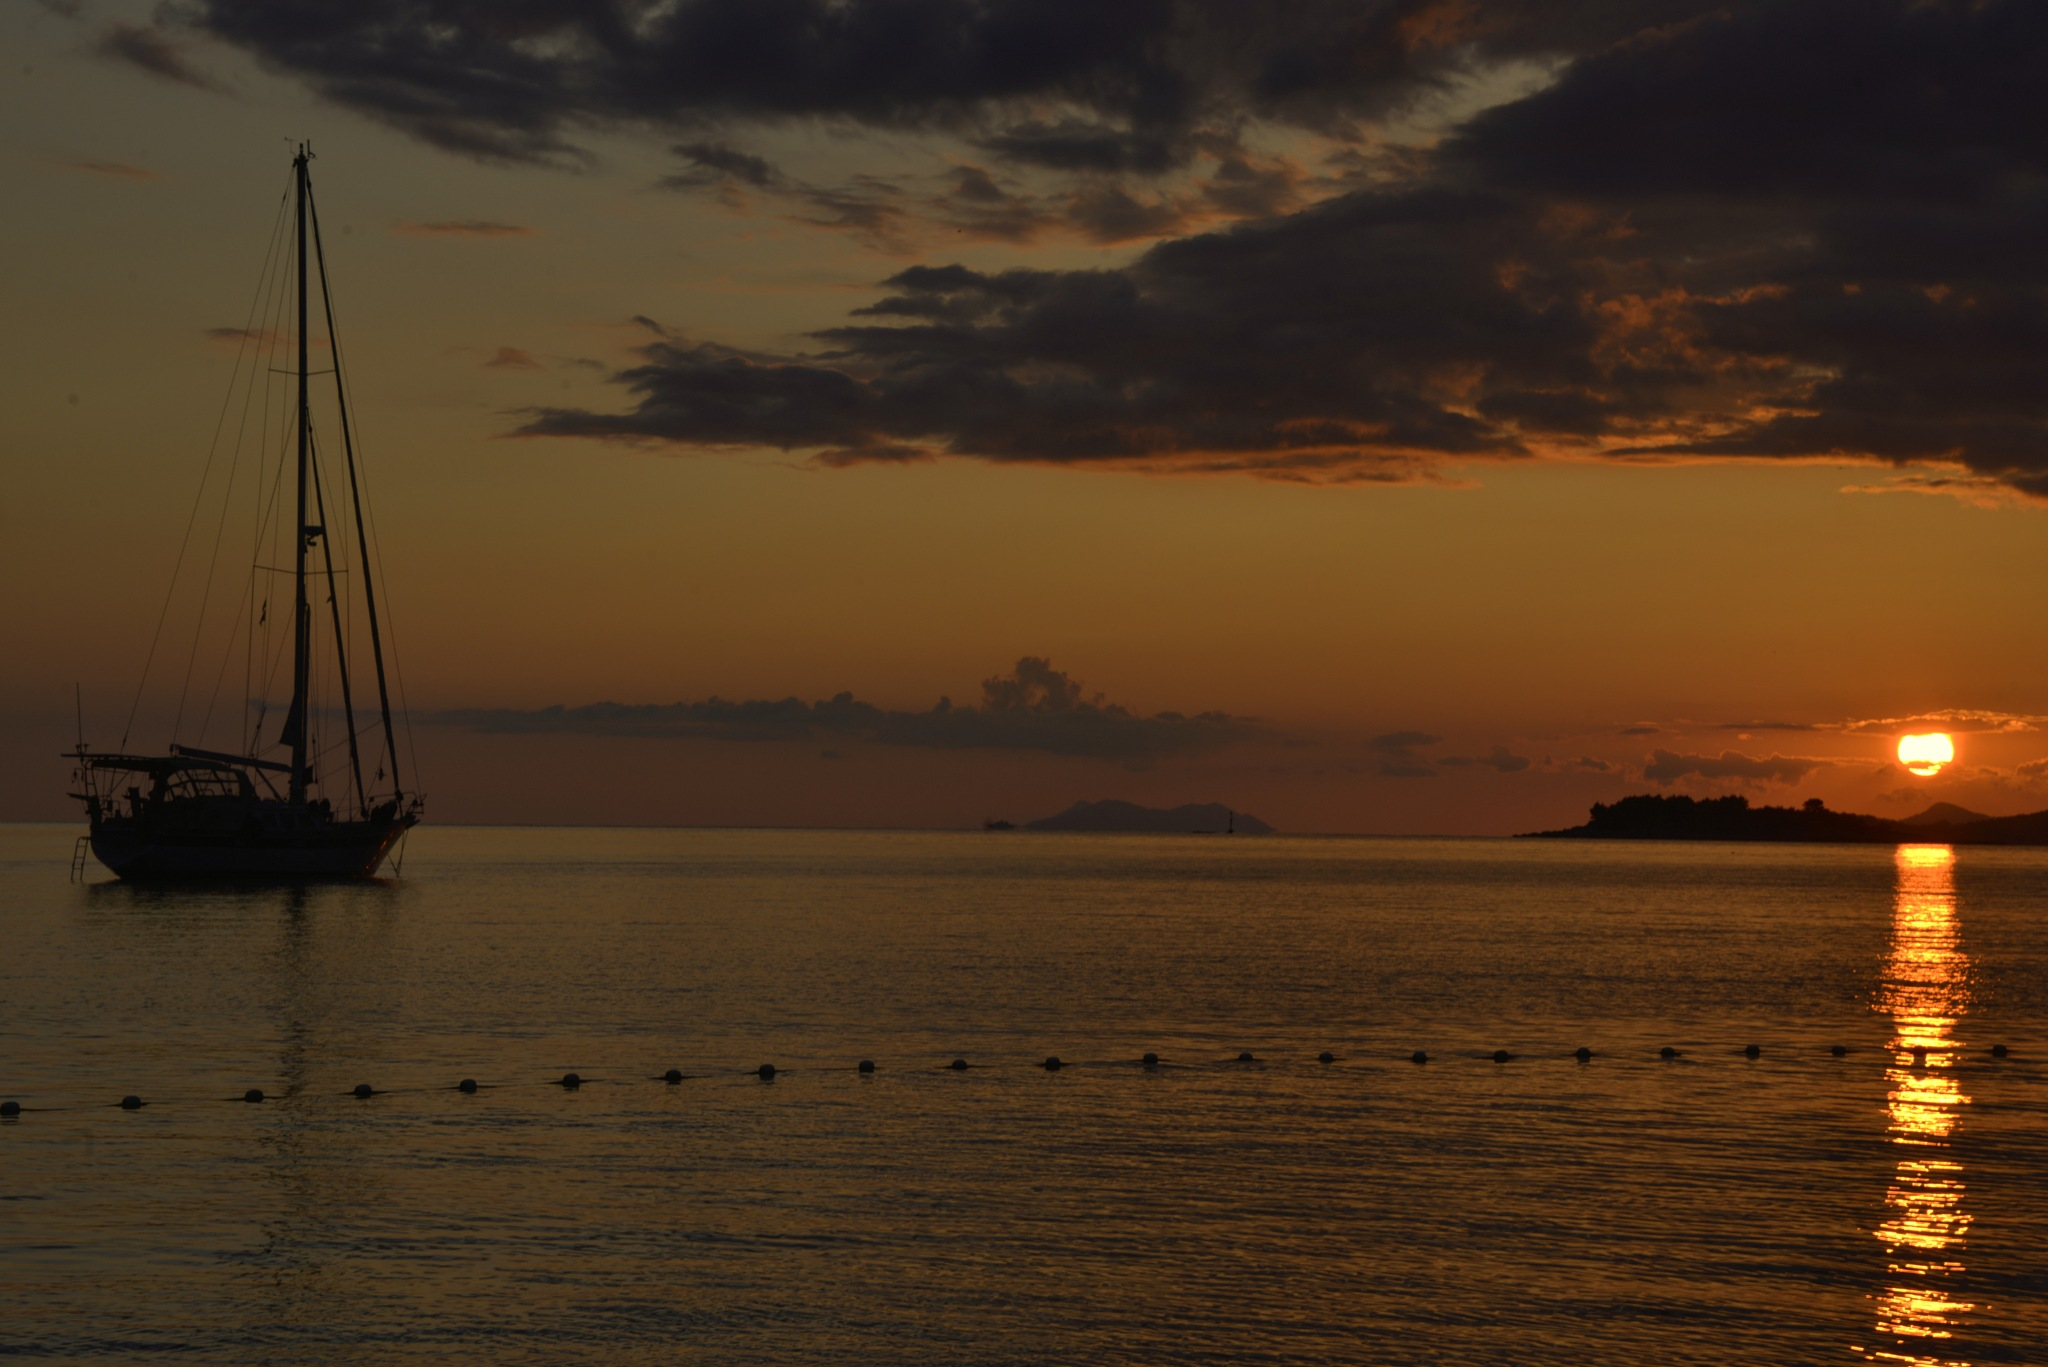 Sunset at Montenegro by Bworks